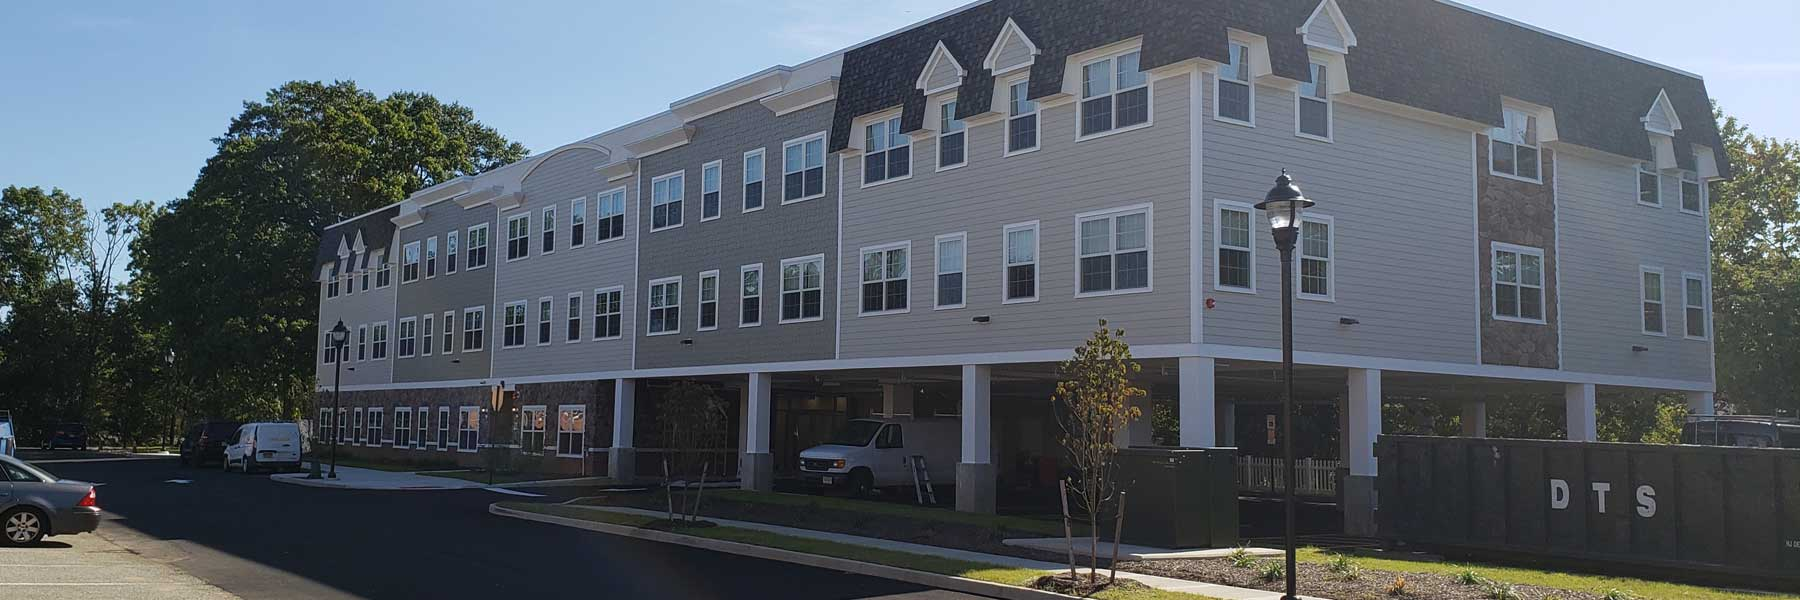 Apartments for rent in Keyport NJ Baypointe Apartments